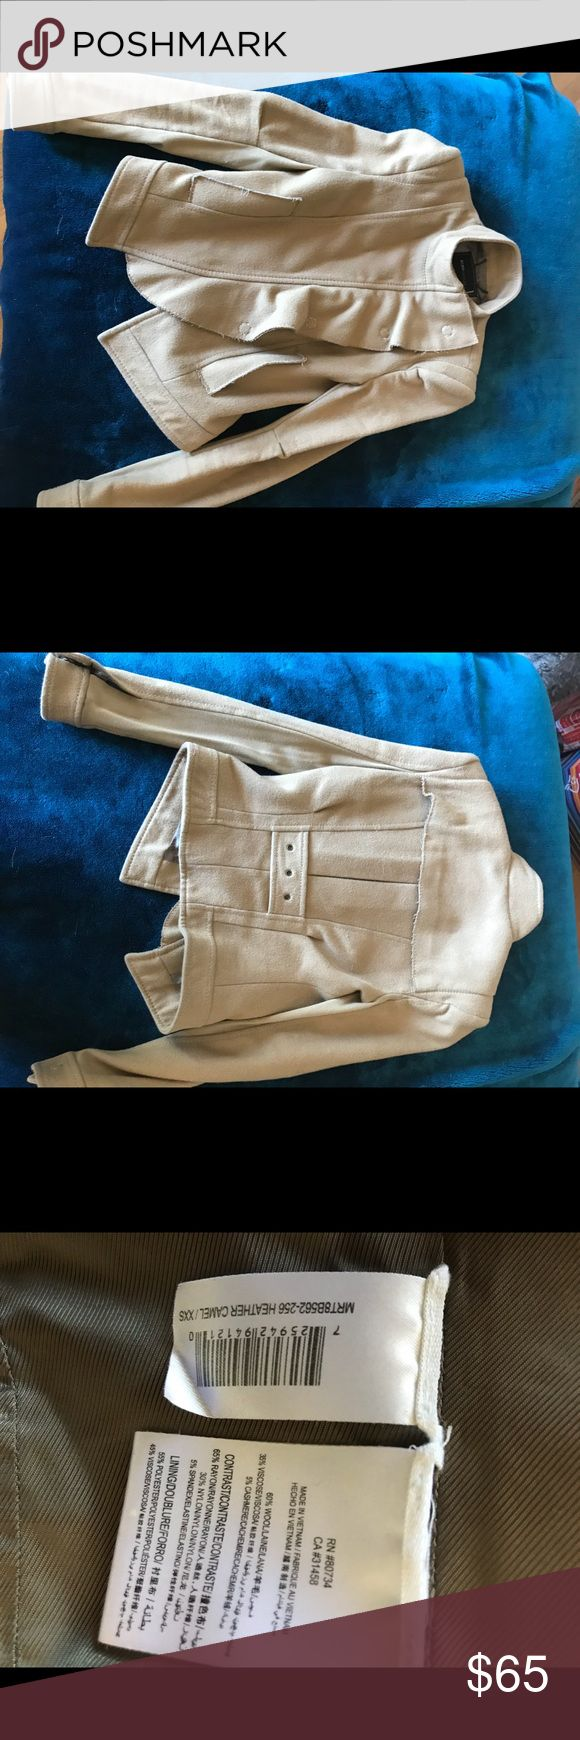 Bcbg Wool/cashmere blend Jacket (used) Gently used jacket and color is camel. Size :XXS Bought at BCBG store so this is authentic BCBGMaxAzria Jackets & Coats Pea Coats